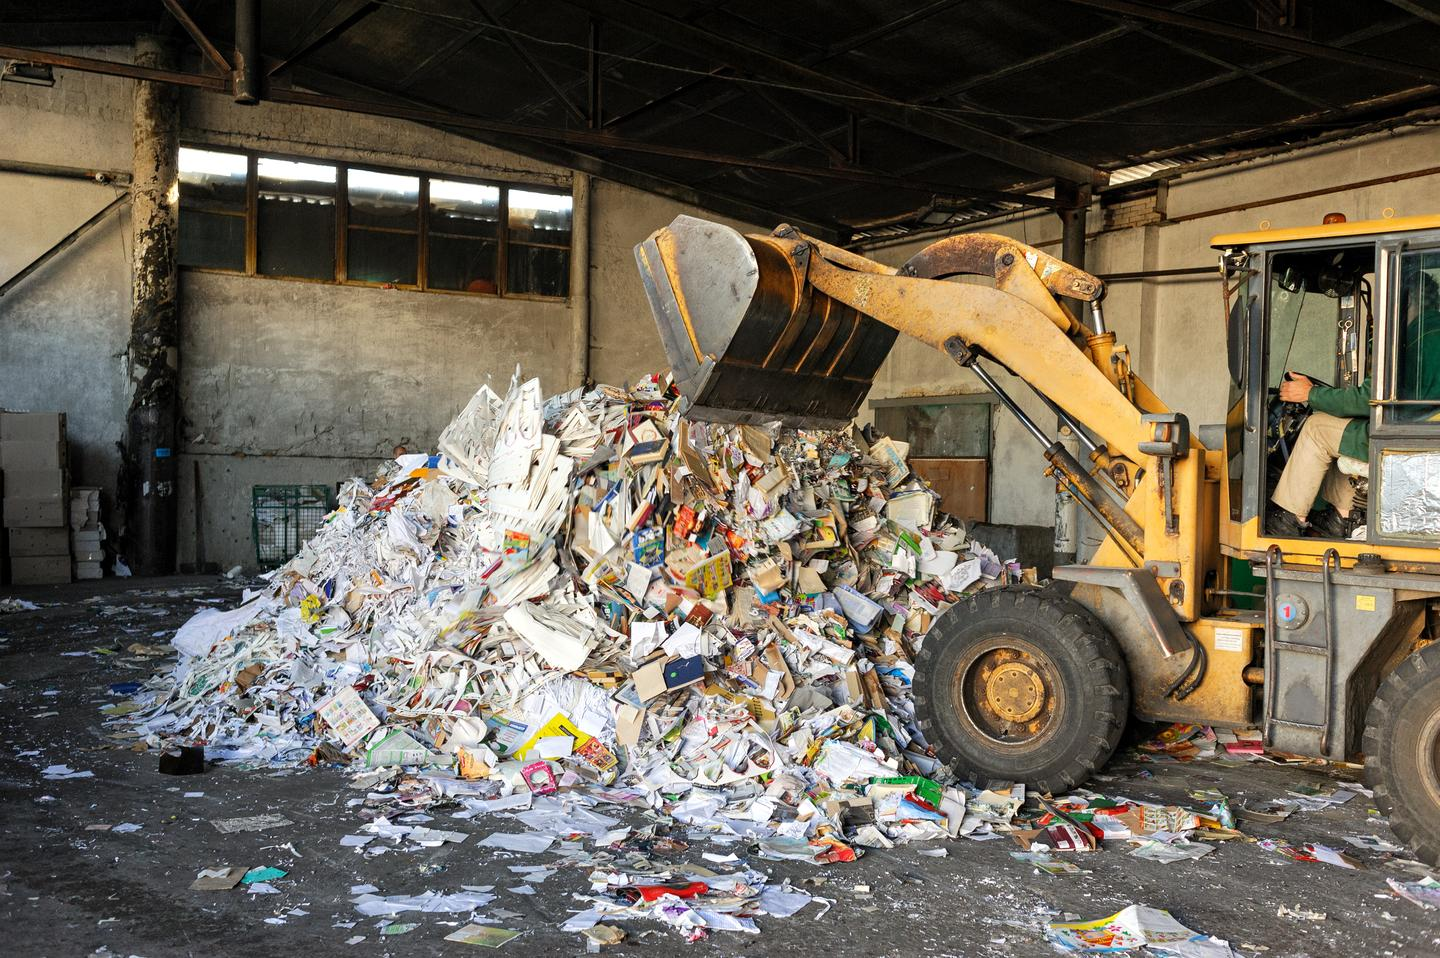 Unlike expanded polystyrene products, the new material is made from existing paper waste instead of petroleum byproducts